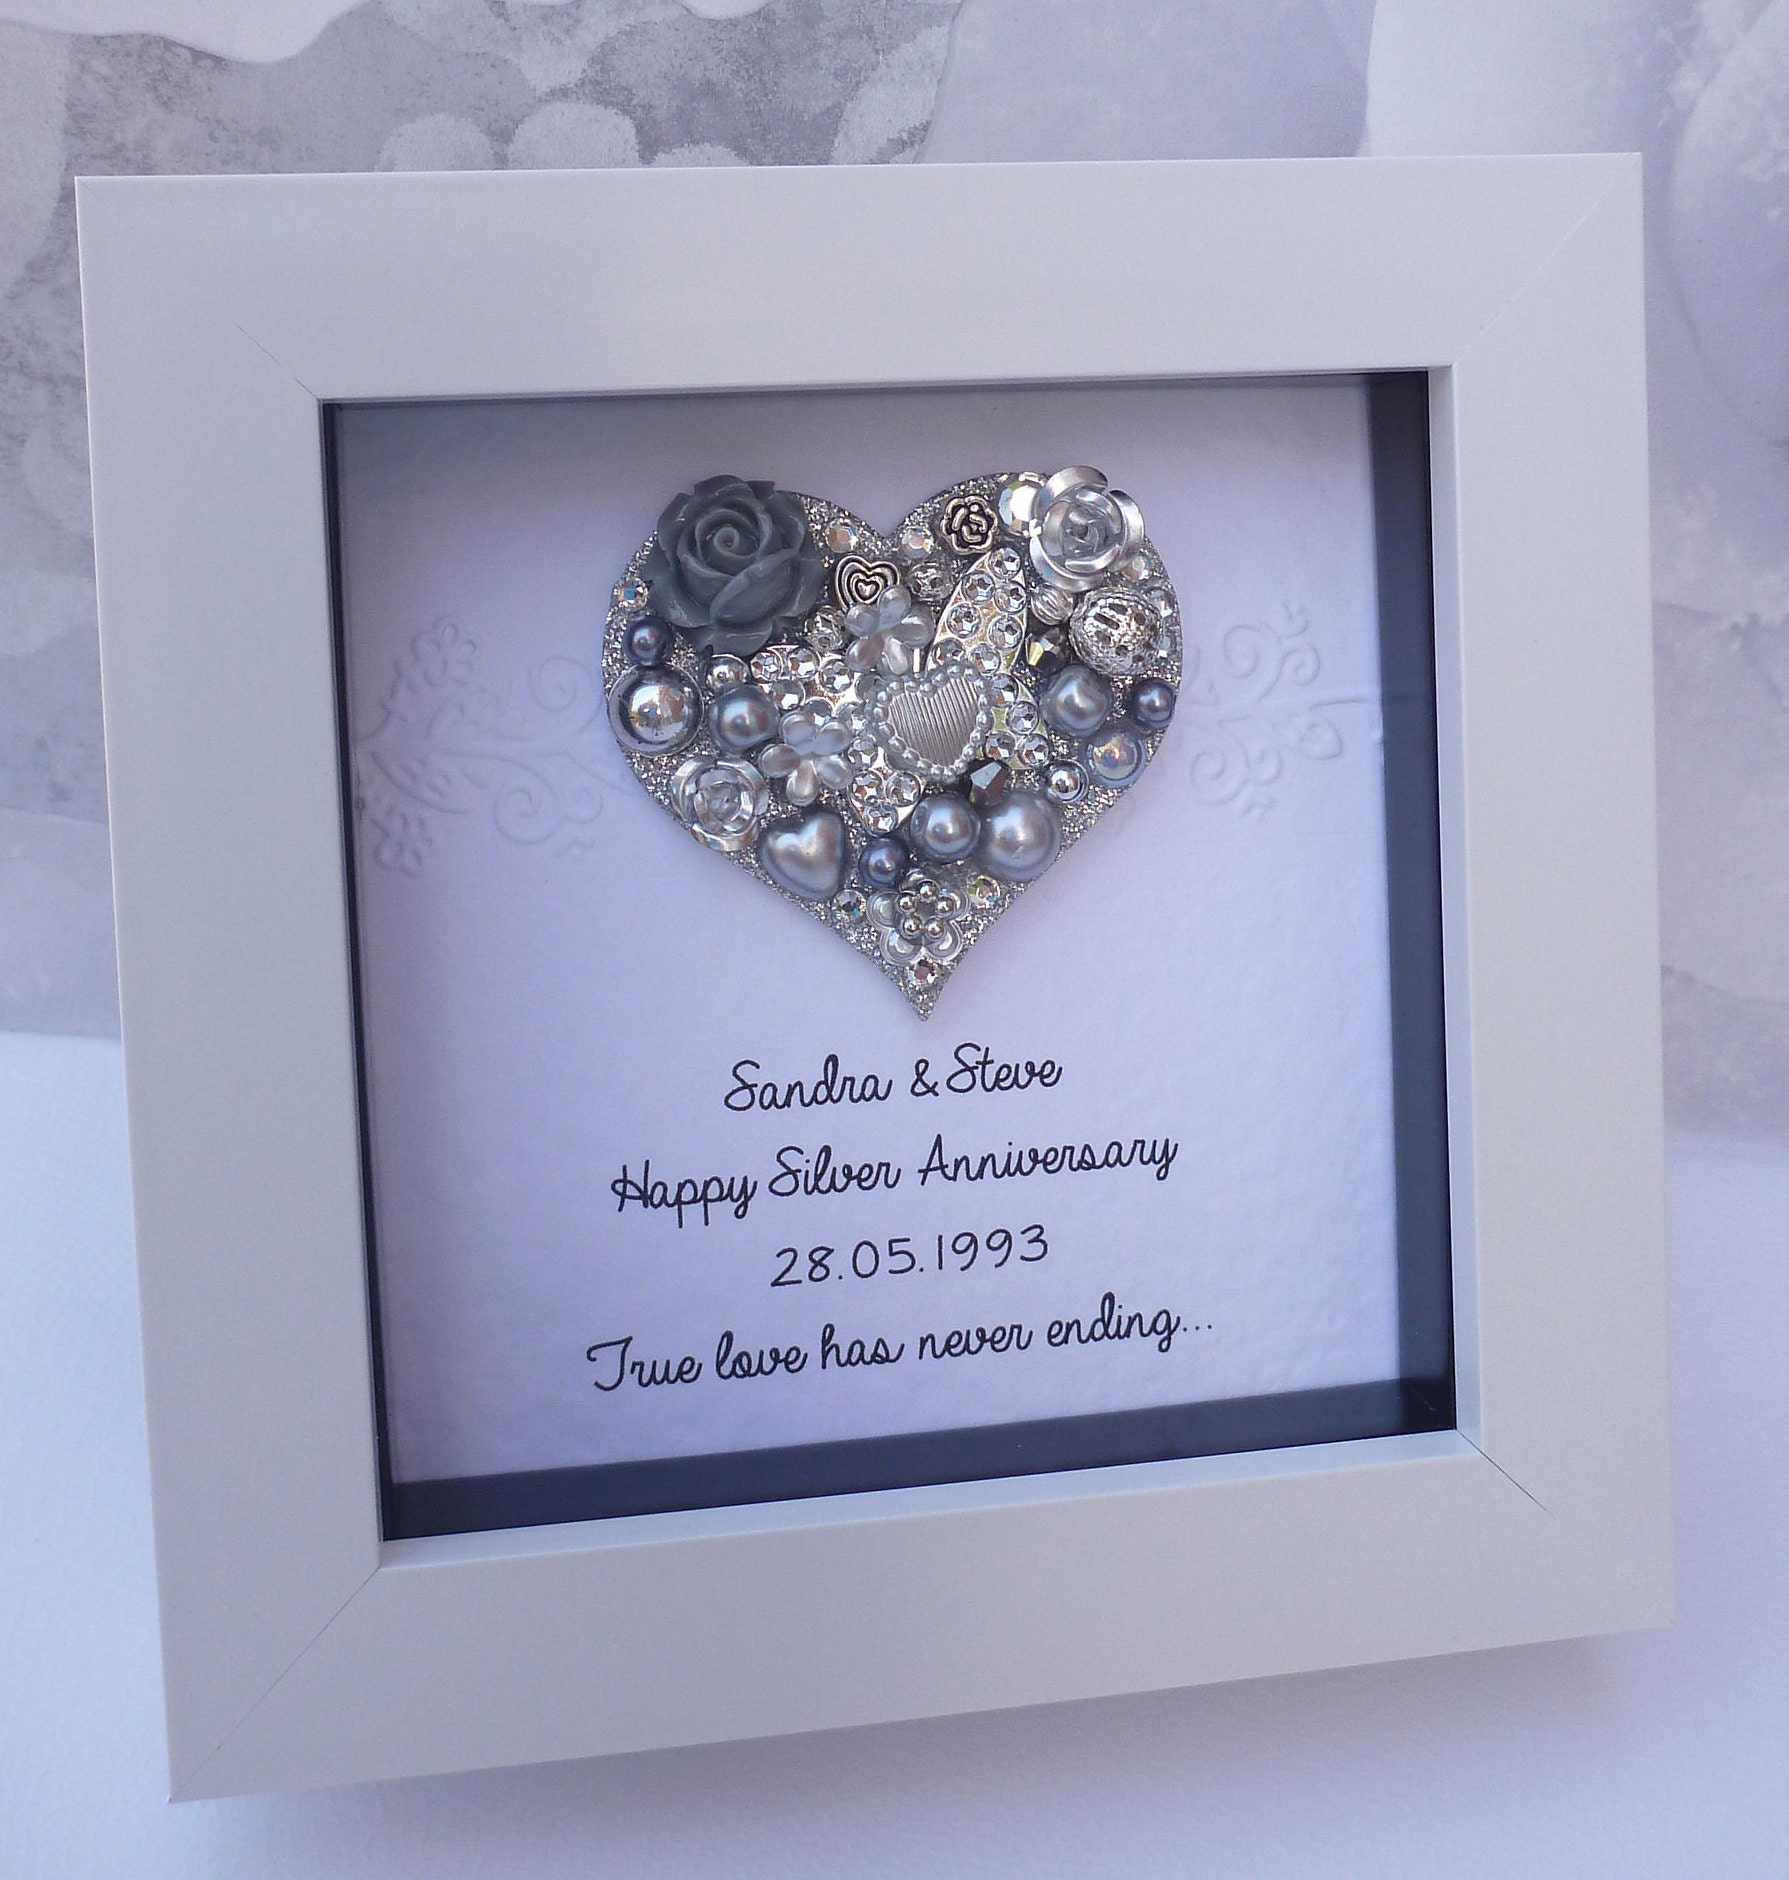 Gifts For Him For 25th Wedding Anniversary: 25th Anniversary Gift 25th Wedding Anniversary Gift25th